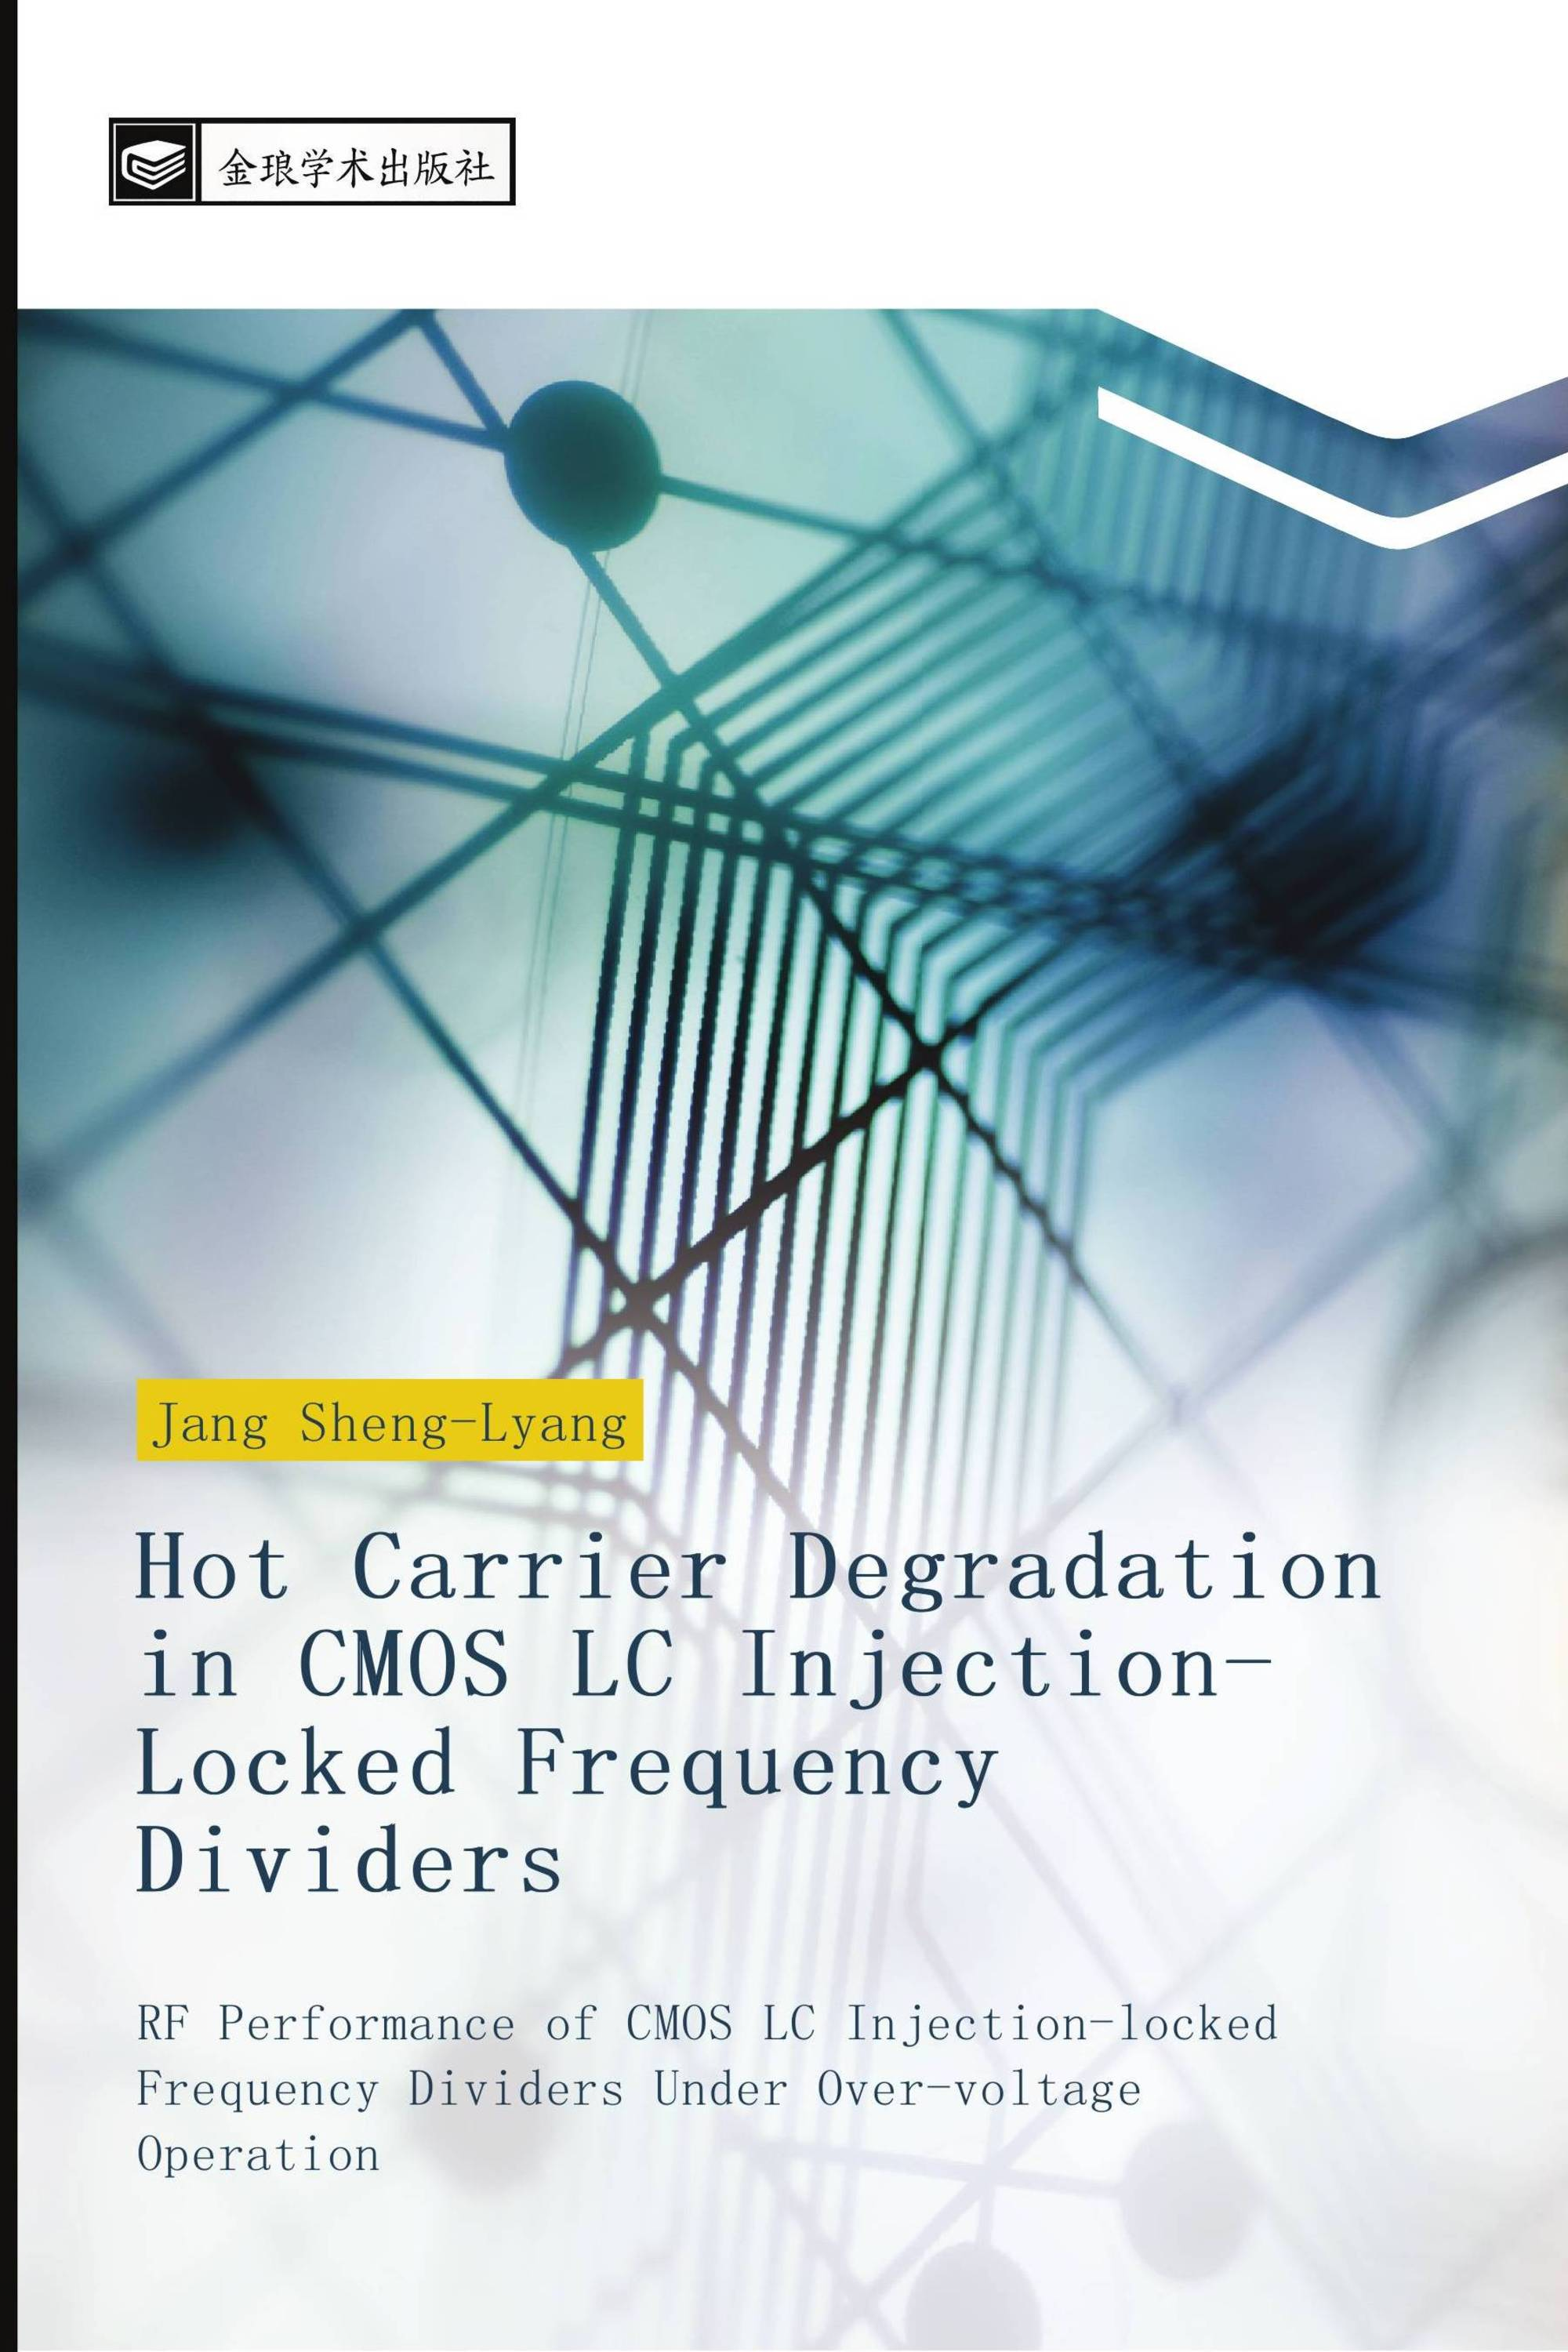 Hot Carrier Degradation in CMOS LC Injection-Locked Frequency